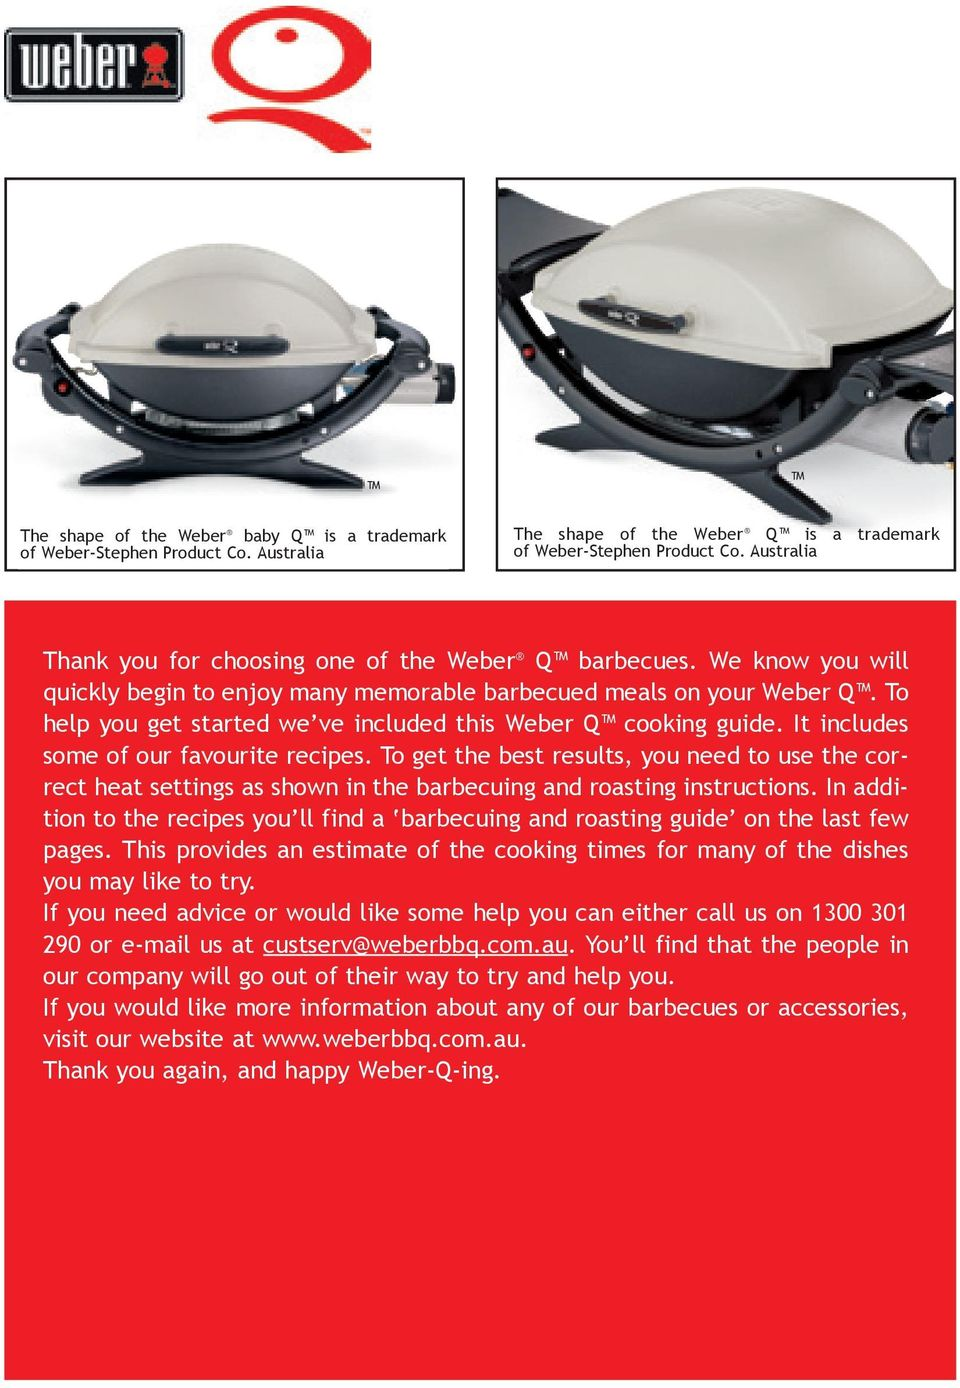 Australian Cooking With The Weber Or Baby Q Pdf Trivet Barbeque To Help You Get Started We Ve Included This Guide It Includes